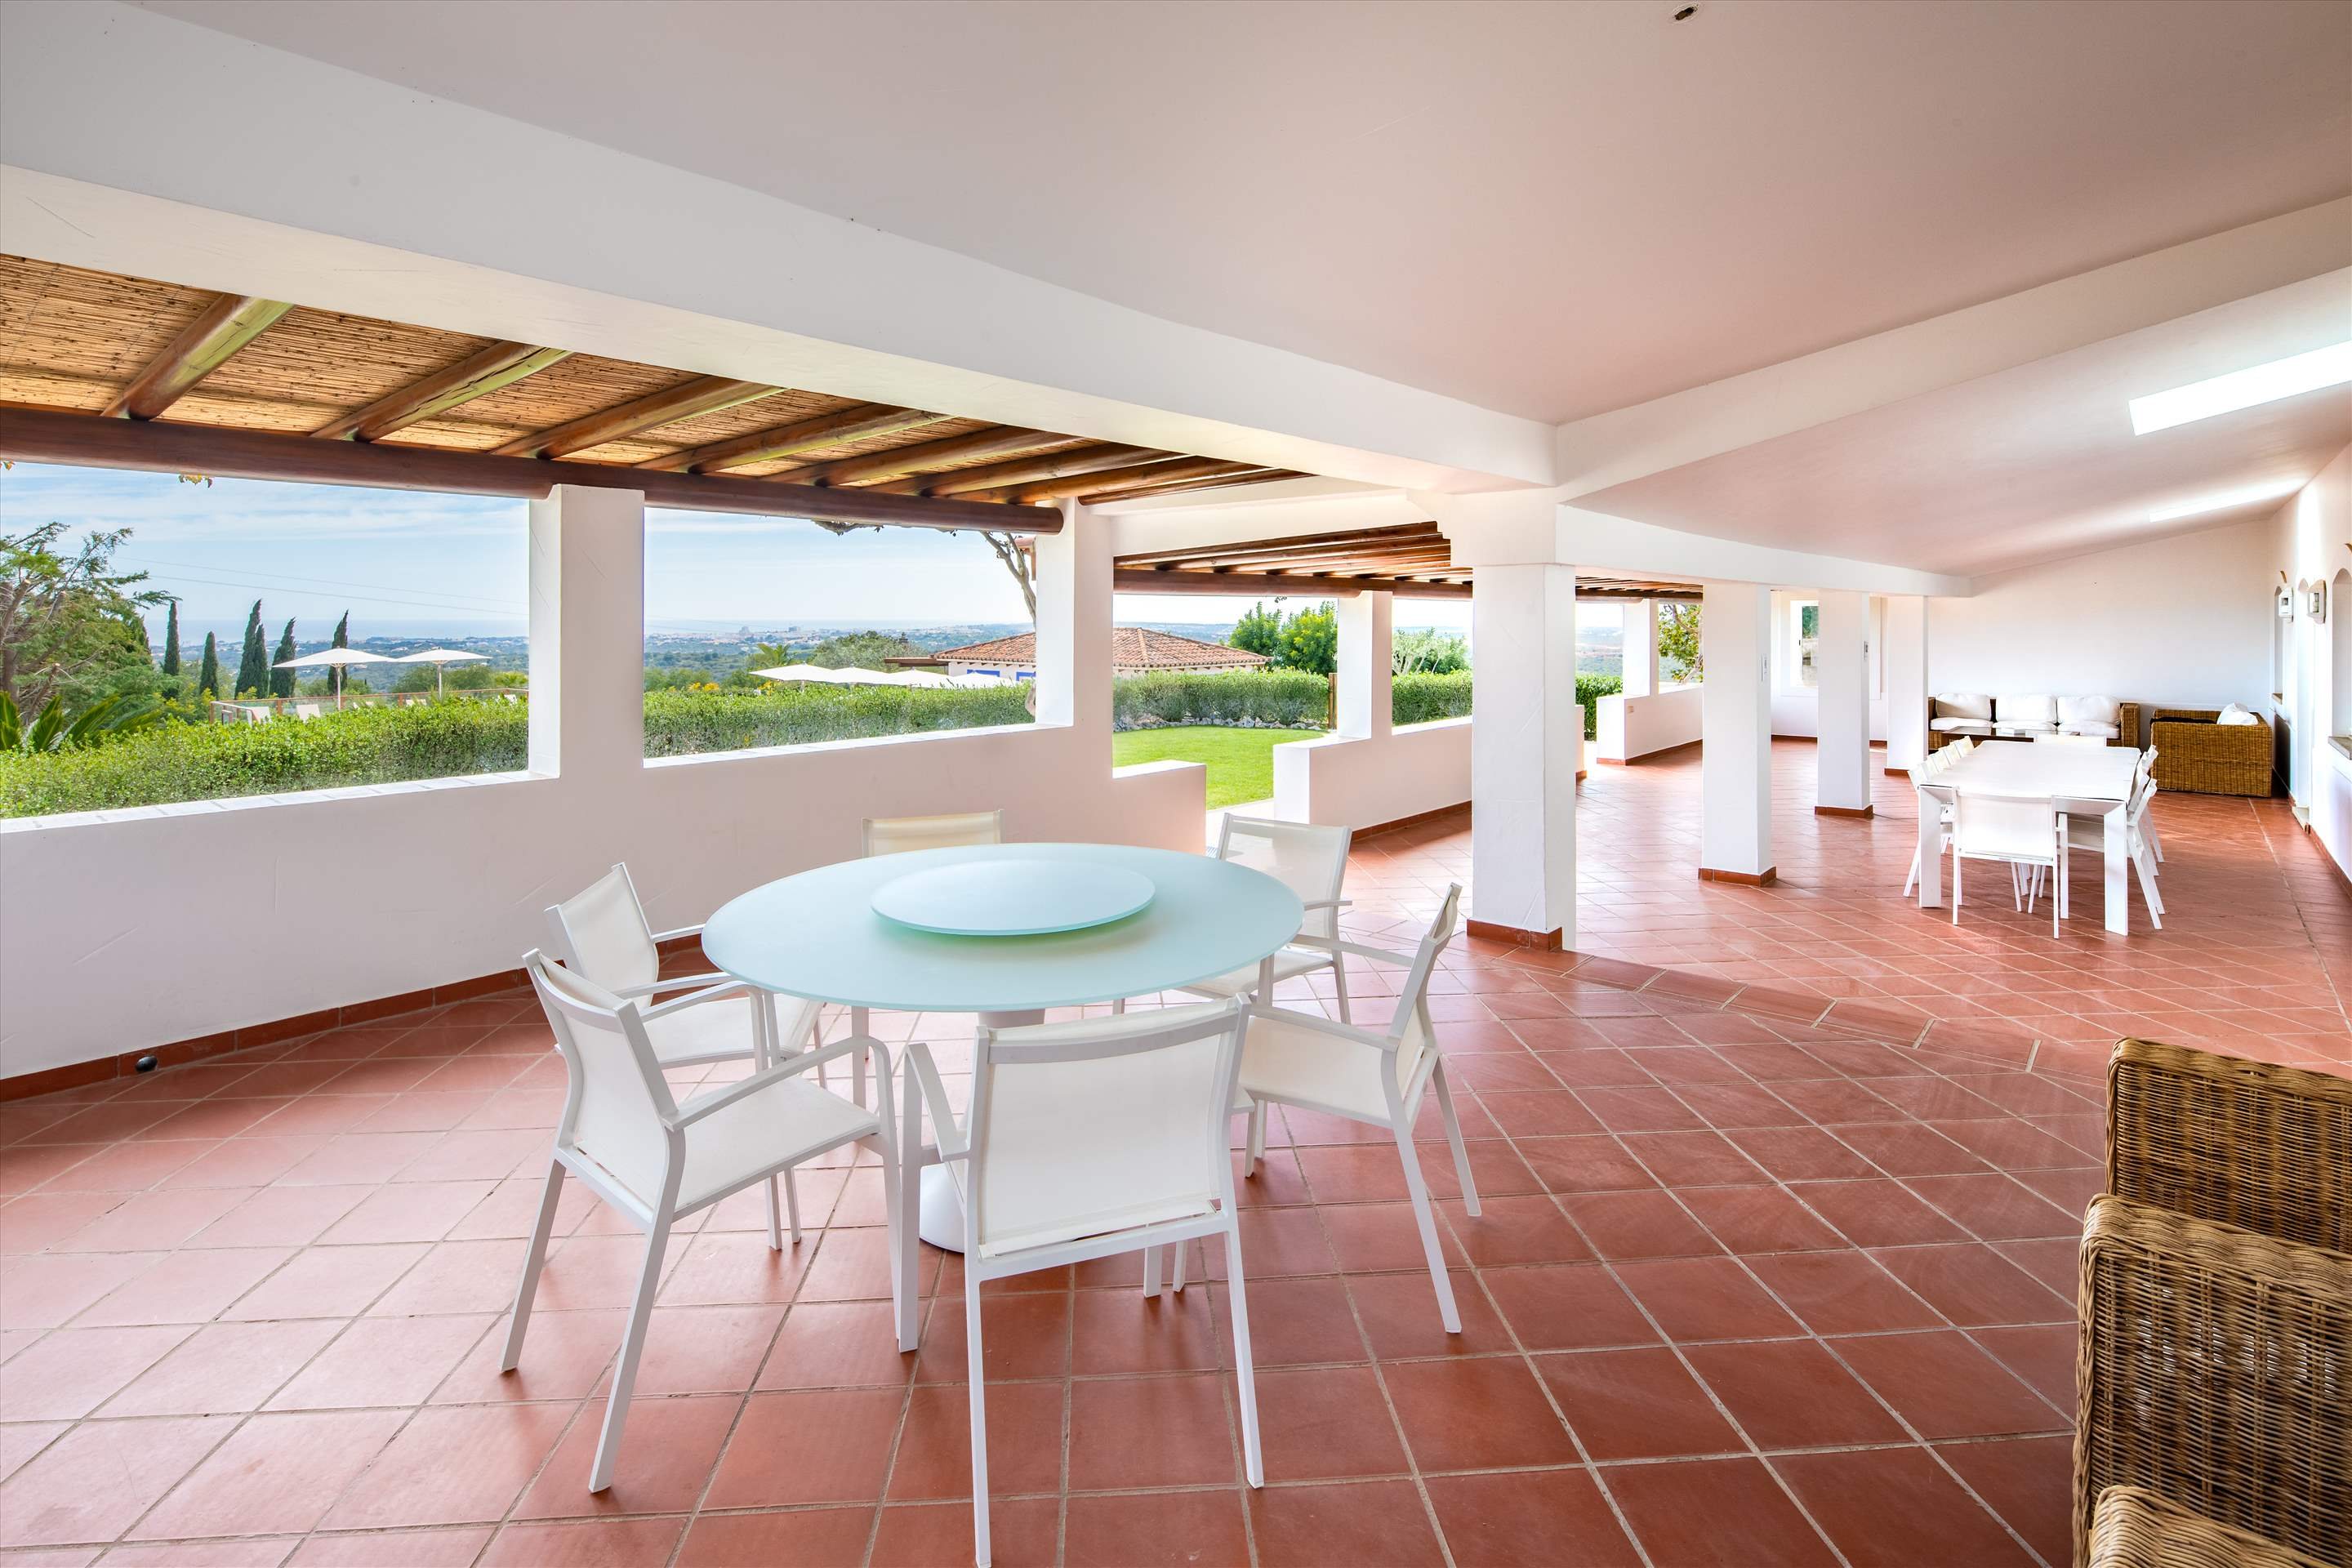 Casa da Montanha, 13-14 persons, 8 bedroom villa in Vilamoura Area, Algarve Photo #7